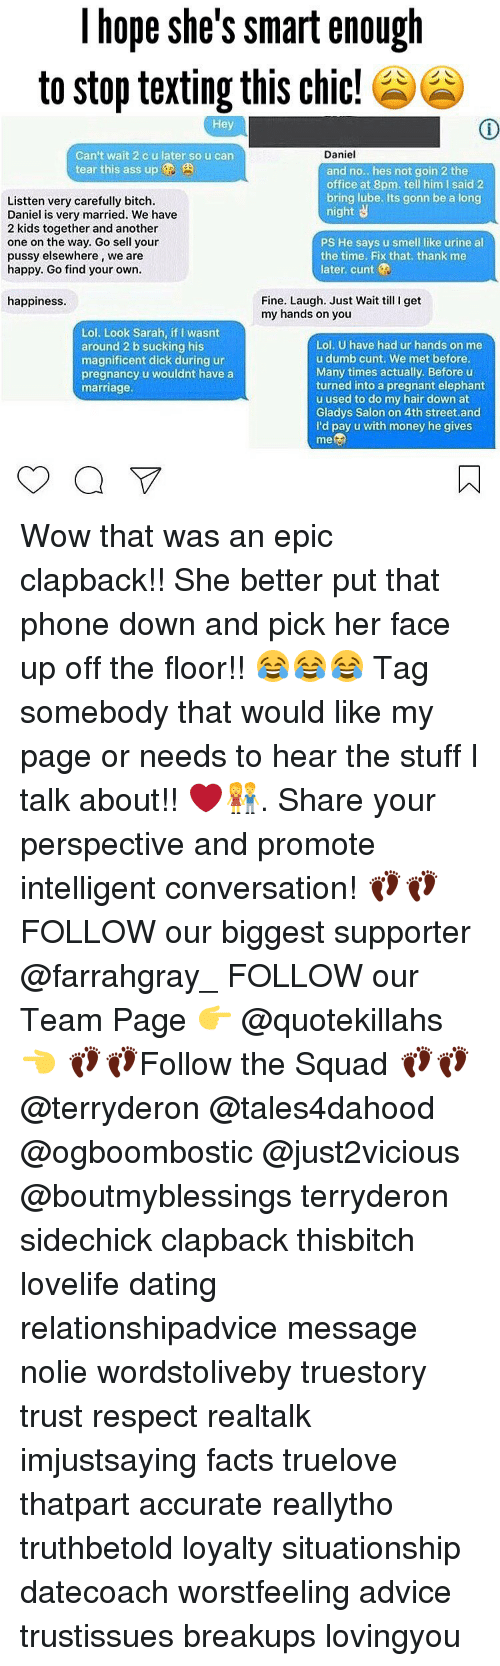 Urin: hope she's smart enough  to stop texting this chic!  Hey  Daniel  Can't wait 2 c u later so u can  tear this ass up  and no... hes not goin 2 the  office at 8pm. tell him l said 2  bring lube. Its gonn be a long  Listten very carefully bitch.  night  Daniel is very married. We have  2 kids together and another  one on the way. Go sell your  PS He says u smell like urine al  pussy elsewhere, we are  the time. Fix that, thank me  later cunt  happy. Go find your own.  Fine. Laugh. Just Wait till I get  happiness.  my hands on you  Lol. Look Sarah, if l wasnt  Lol. U have had ur hands on me  around 2 b sucking his  u dumb cunt. We met before.  magnificent dick during ur  Many times actually. Before u  pregnancy u wouldnt have a  turned into a pregnant elephant  marriage.  u used to do my hair down at  Gladys Salon on 4th street.and  I'd pay u with money he gives  me Wow that was an epic clapback!! She better put that phone down and pick her face up off the floor!! 😂😂😂 Tag somebody that would like my page or needs to hear the stuff I talk about!! ❤️👫. Share your perspective and promote intelligent conversation! 👣👣 FOLLOW our biggest supporter @farrahgray_ FOLLOW our Team Page 👉 @quotekillahs 👈 👣👣Follow the Squad 👣👣 @terryderon @tales4dahood @ogboombostic @just2vicious @boutmyblessings terryderon sidechick clapback thisbitch lovelife dating relationshipadvice message nolie wordstoliveby truestory trust respect realtalk imjustsaying facts truelove thatpart accurate reallytho truthbetold loyalty situationship datecoach worstfeeling advice trustissues breakups lovingyou